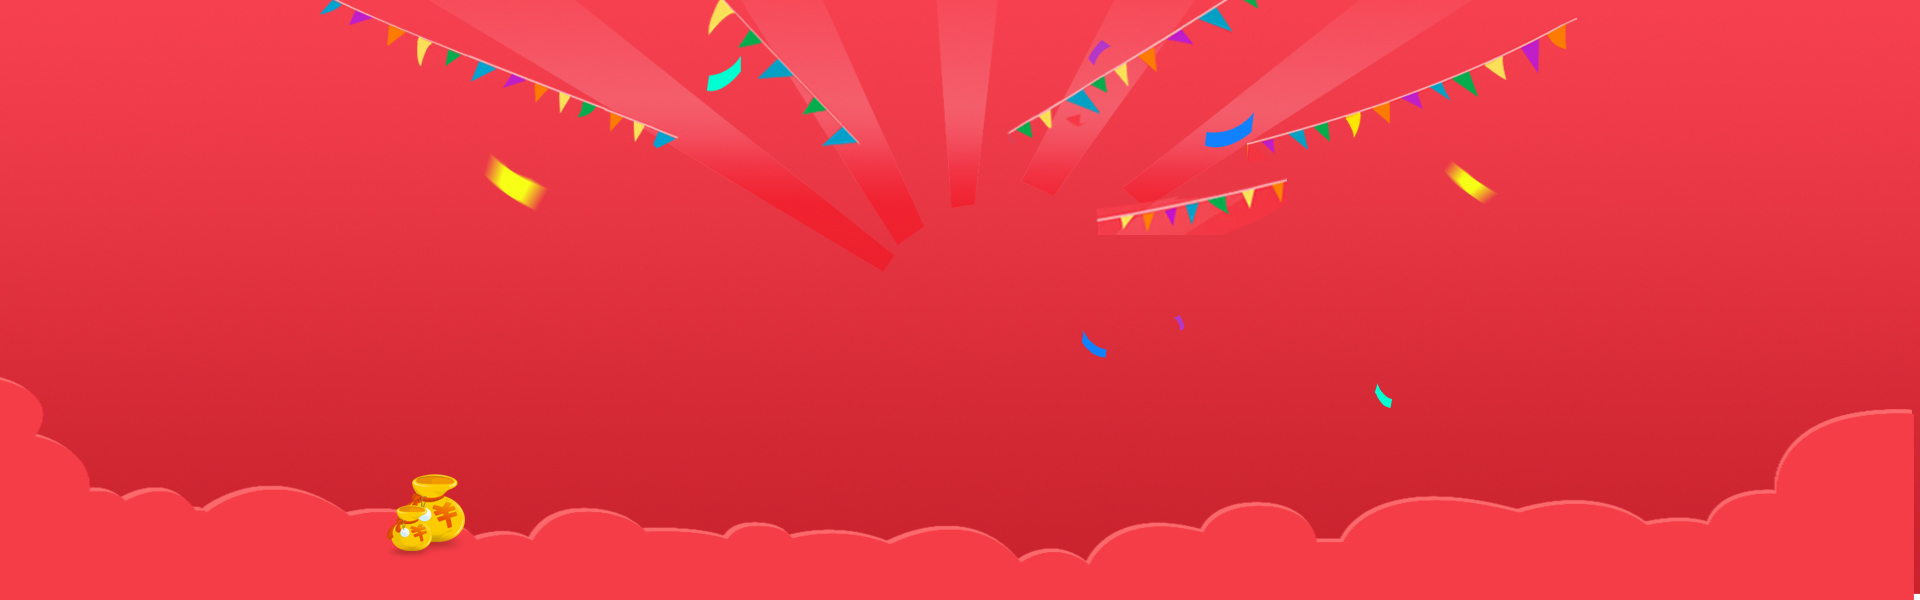 Geometric Flat Background Banner Event Poster Red Poster